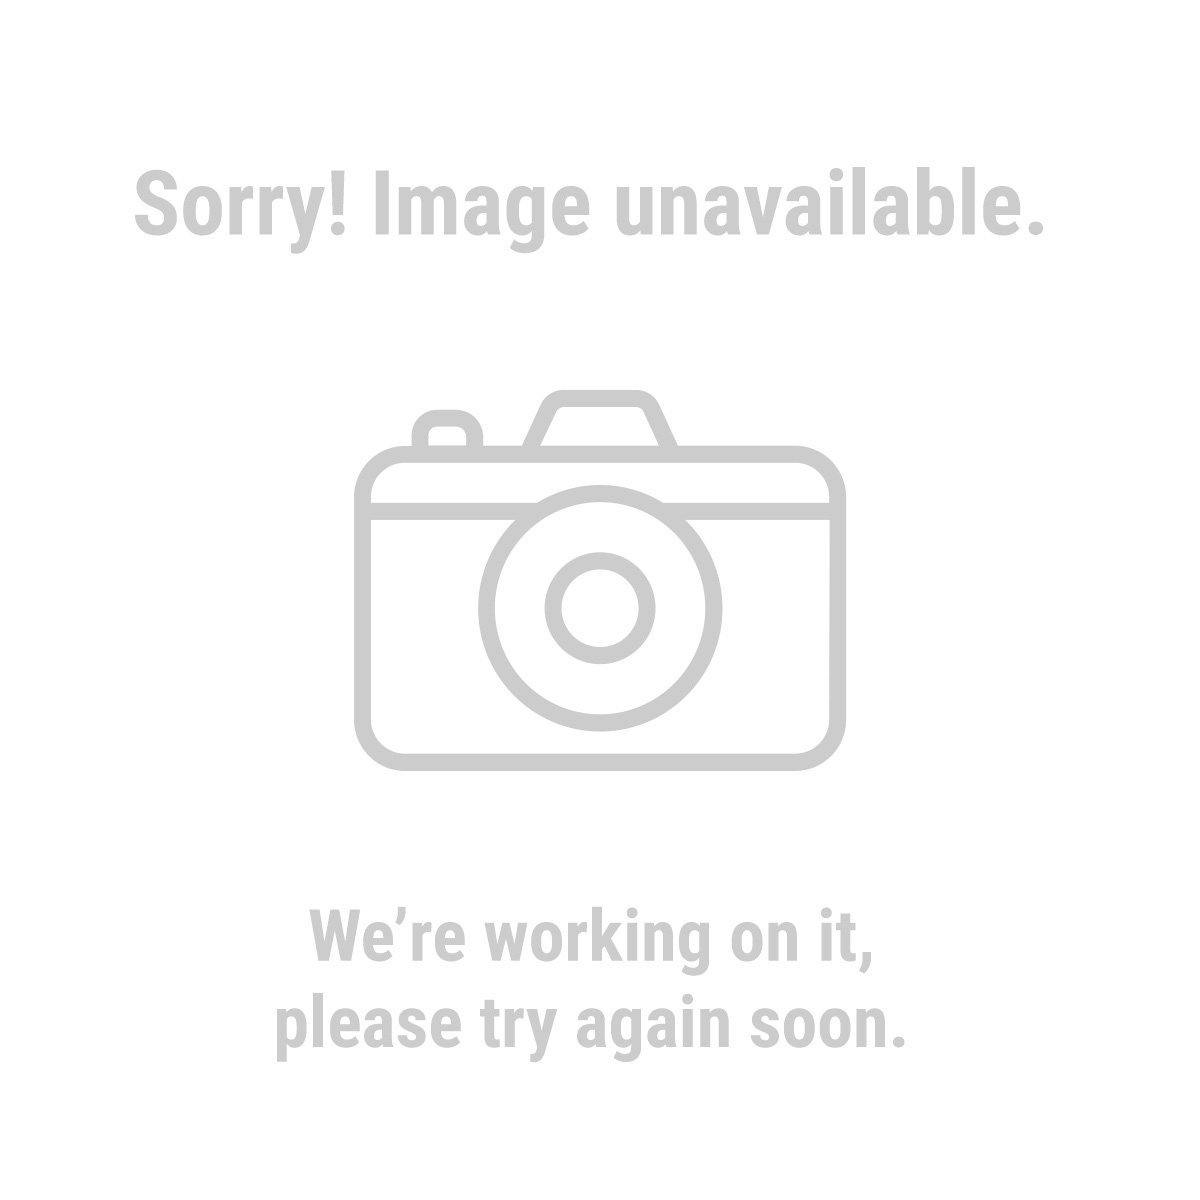 Strongway PVC Discharge Hose 2in.Dia x 25ft.L